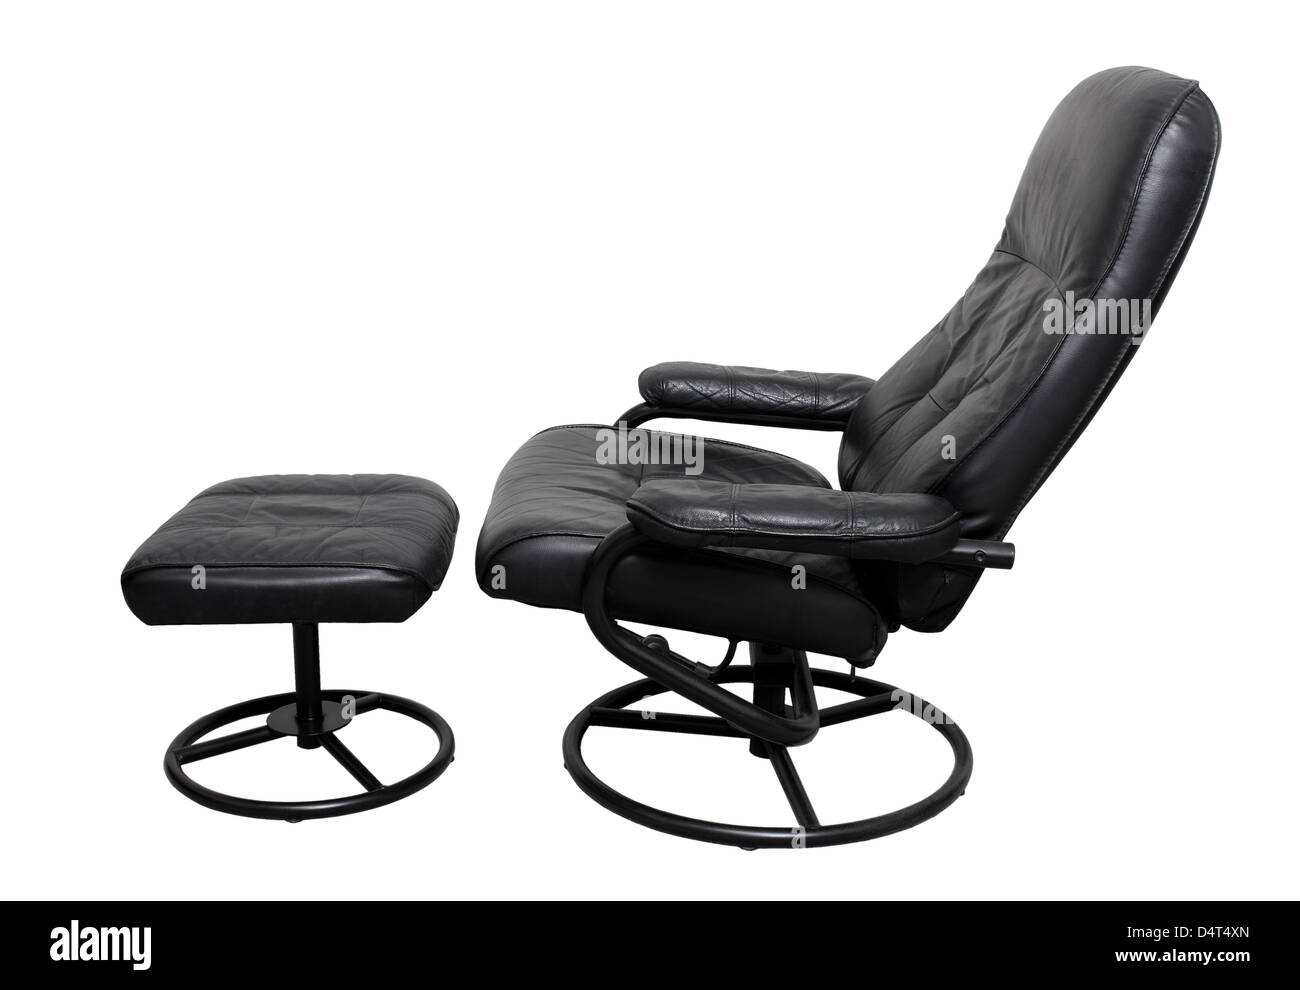 Recliner Chair with Footstool - Stock Image